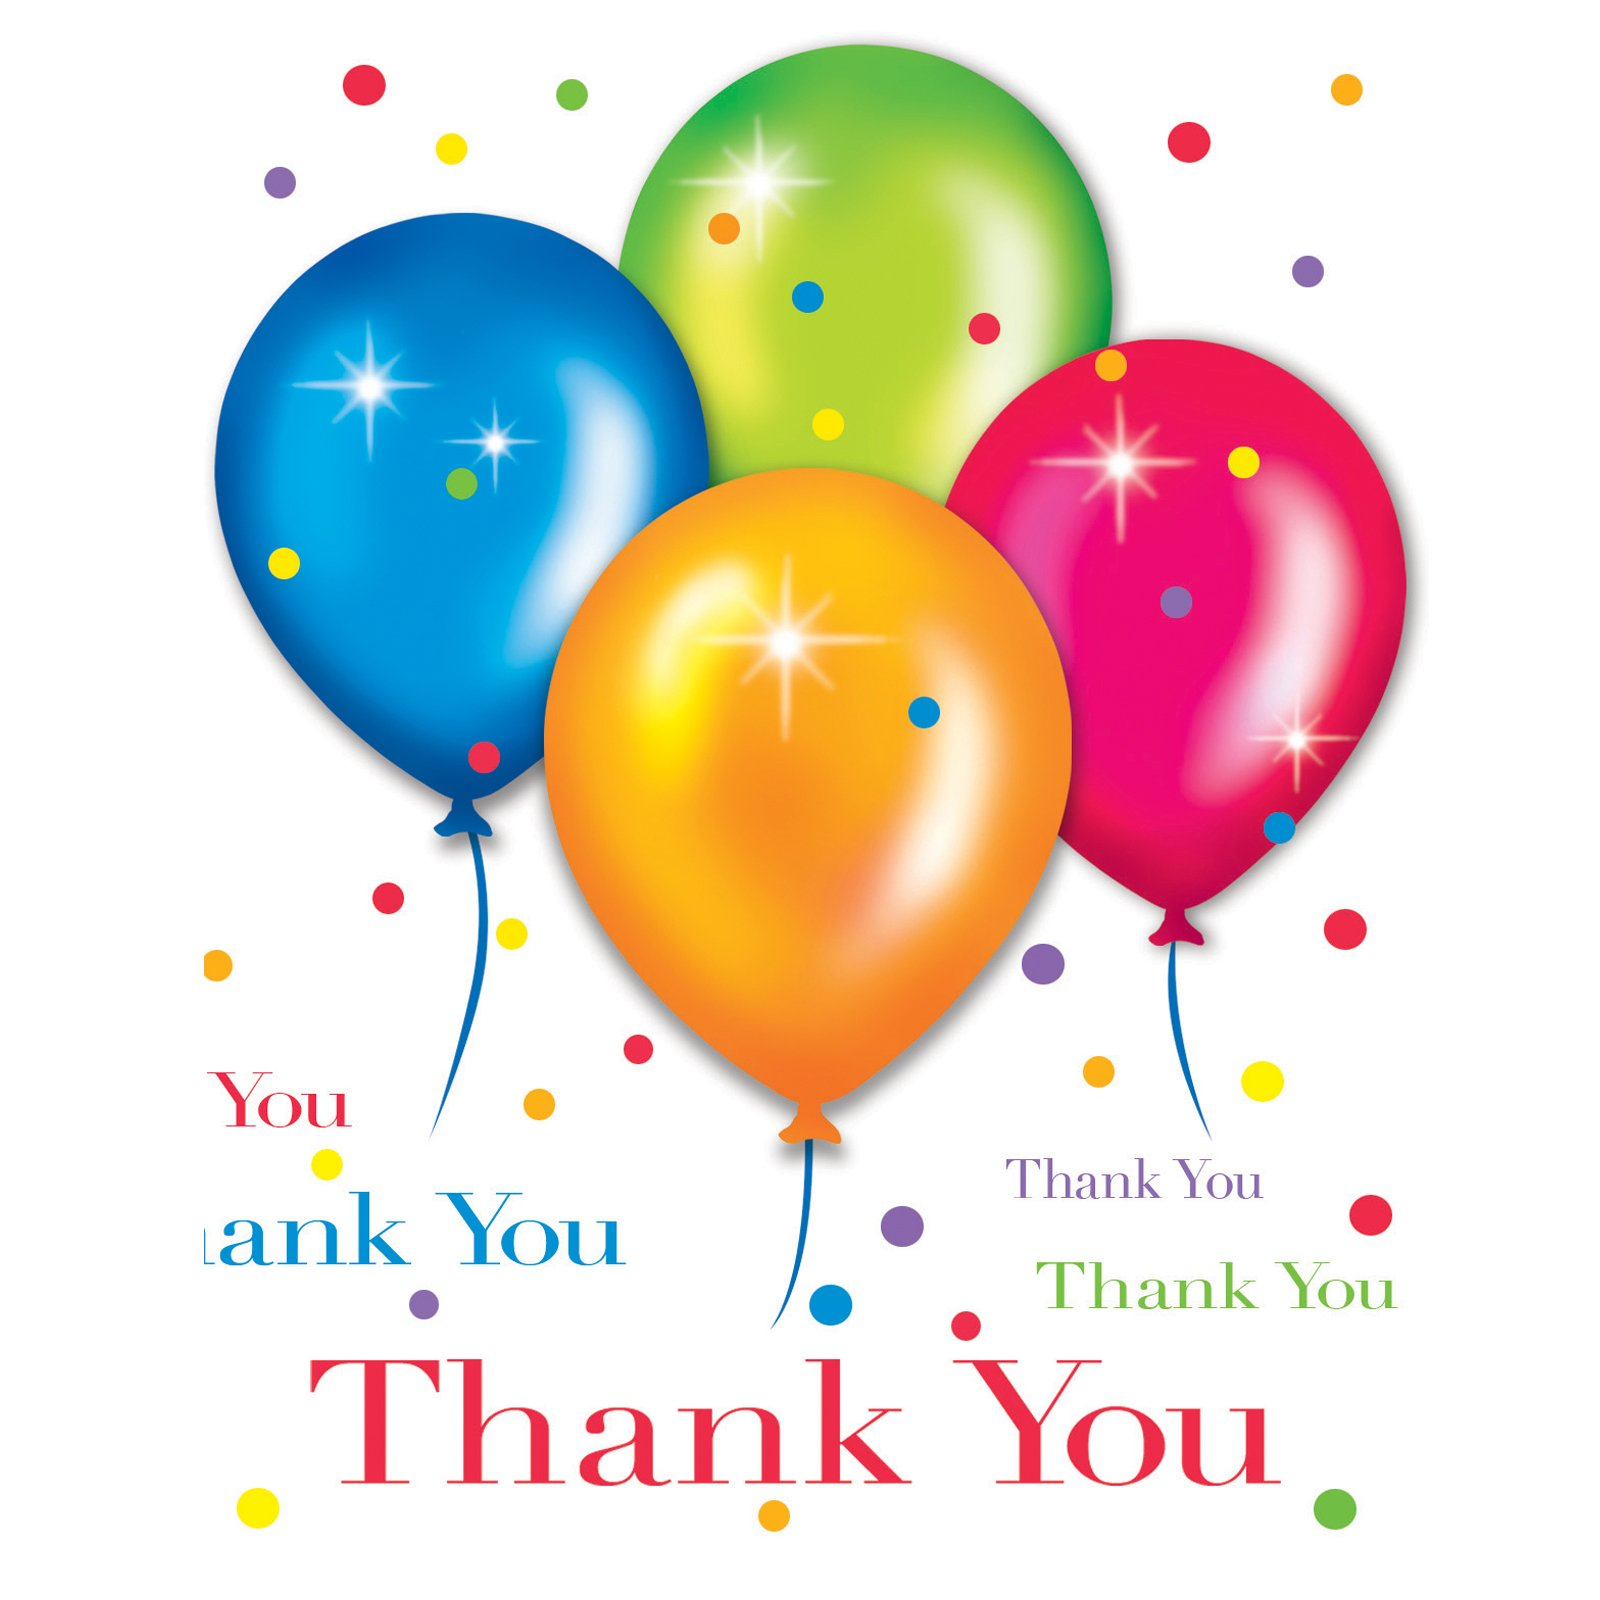 Birthday Balloons Thank You Cards (8 count)